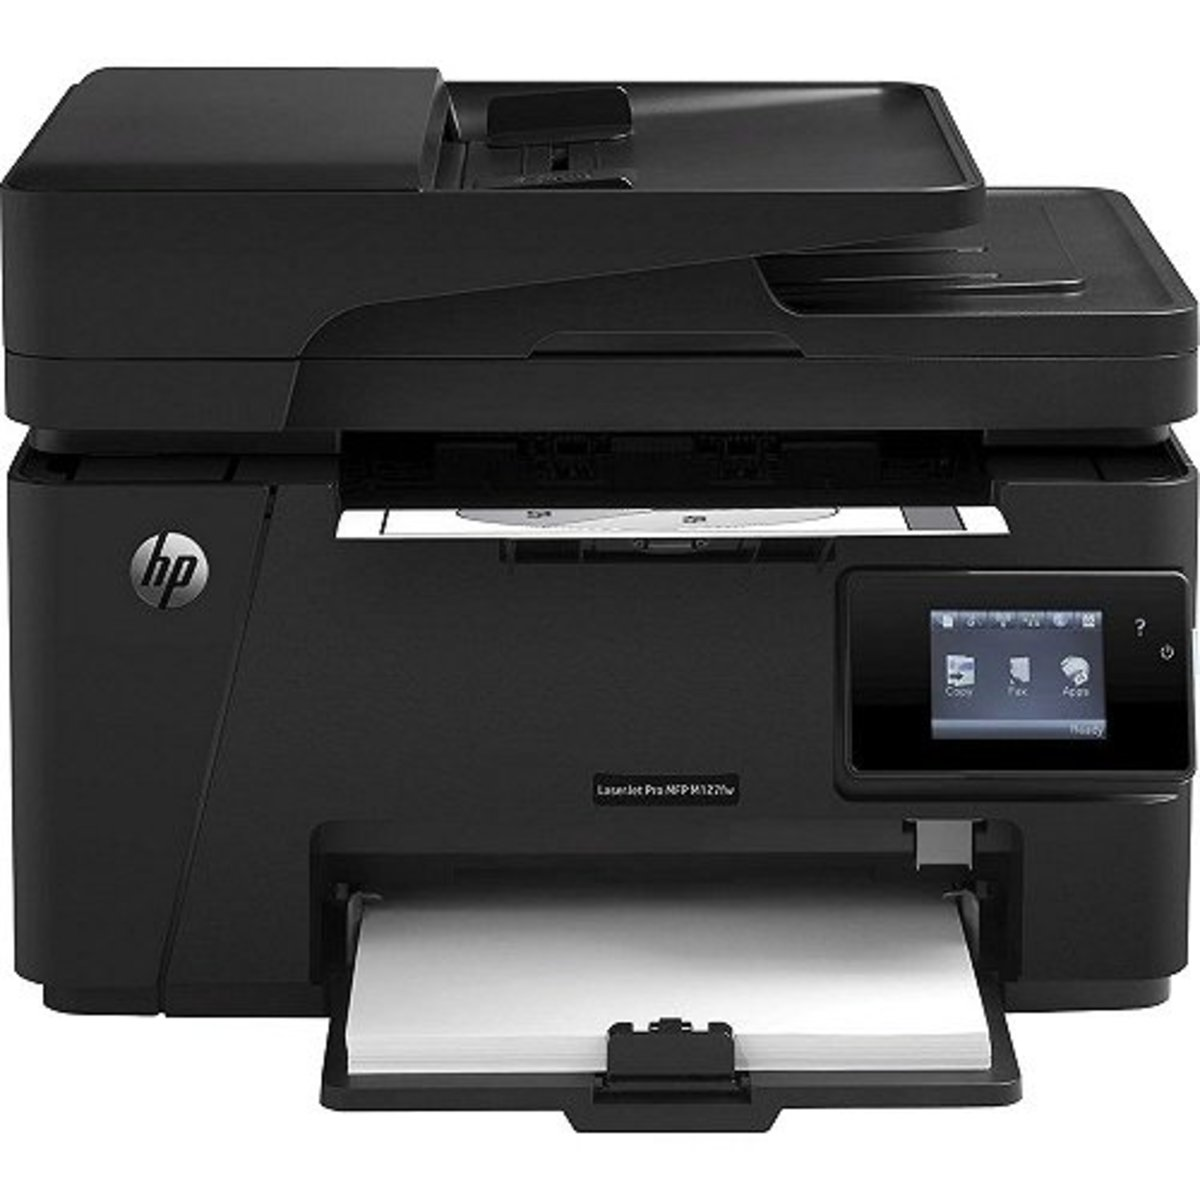 HP M127FW Wireless Monochrome Laserjet Printer